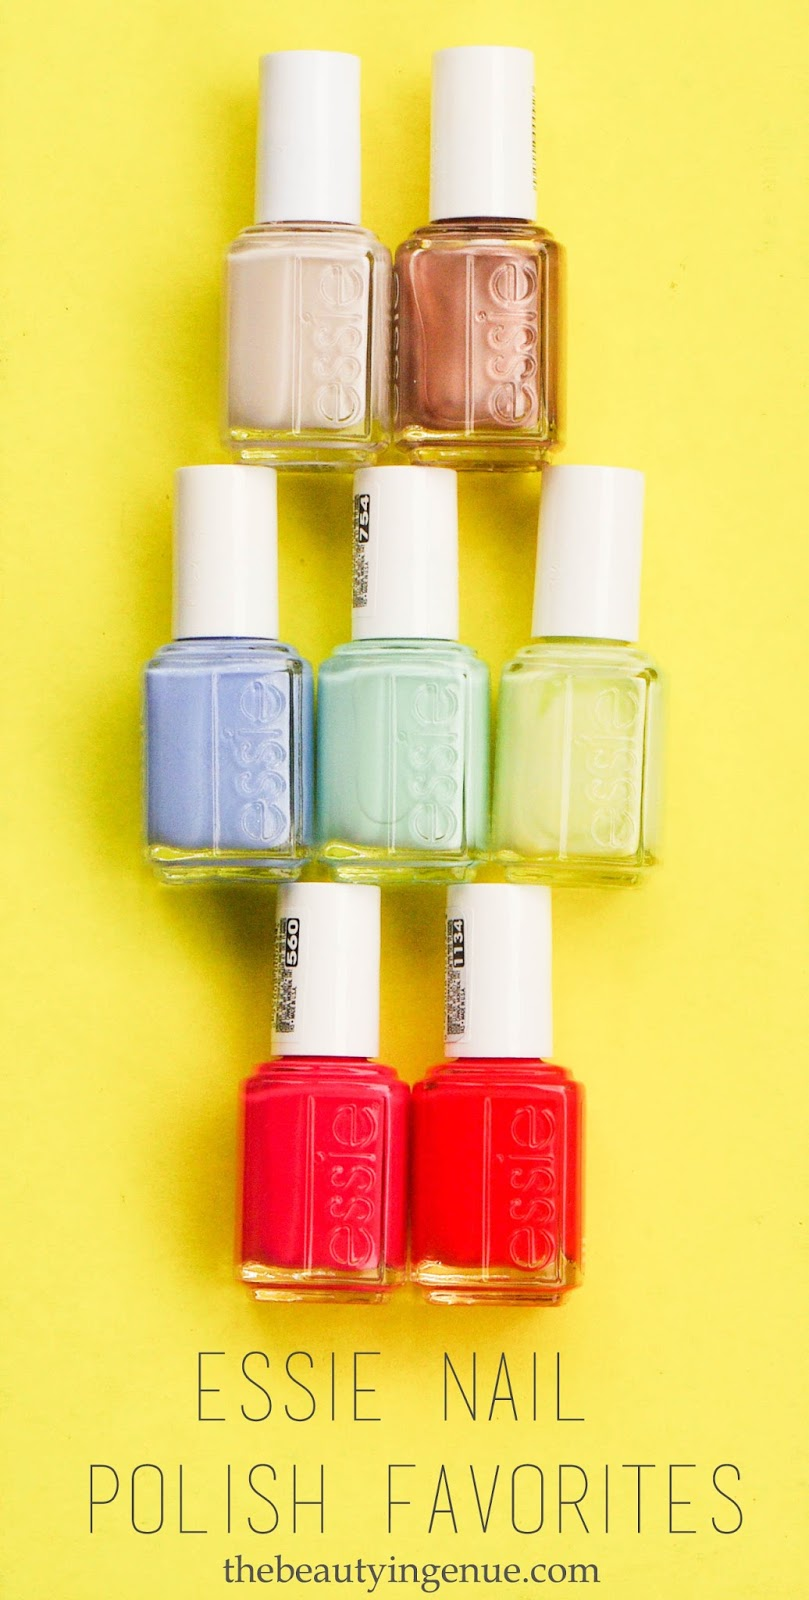 Brunettes and Pearls : Favorite Essie Nail Polishes